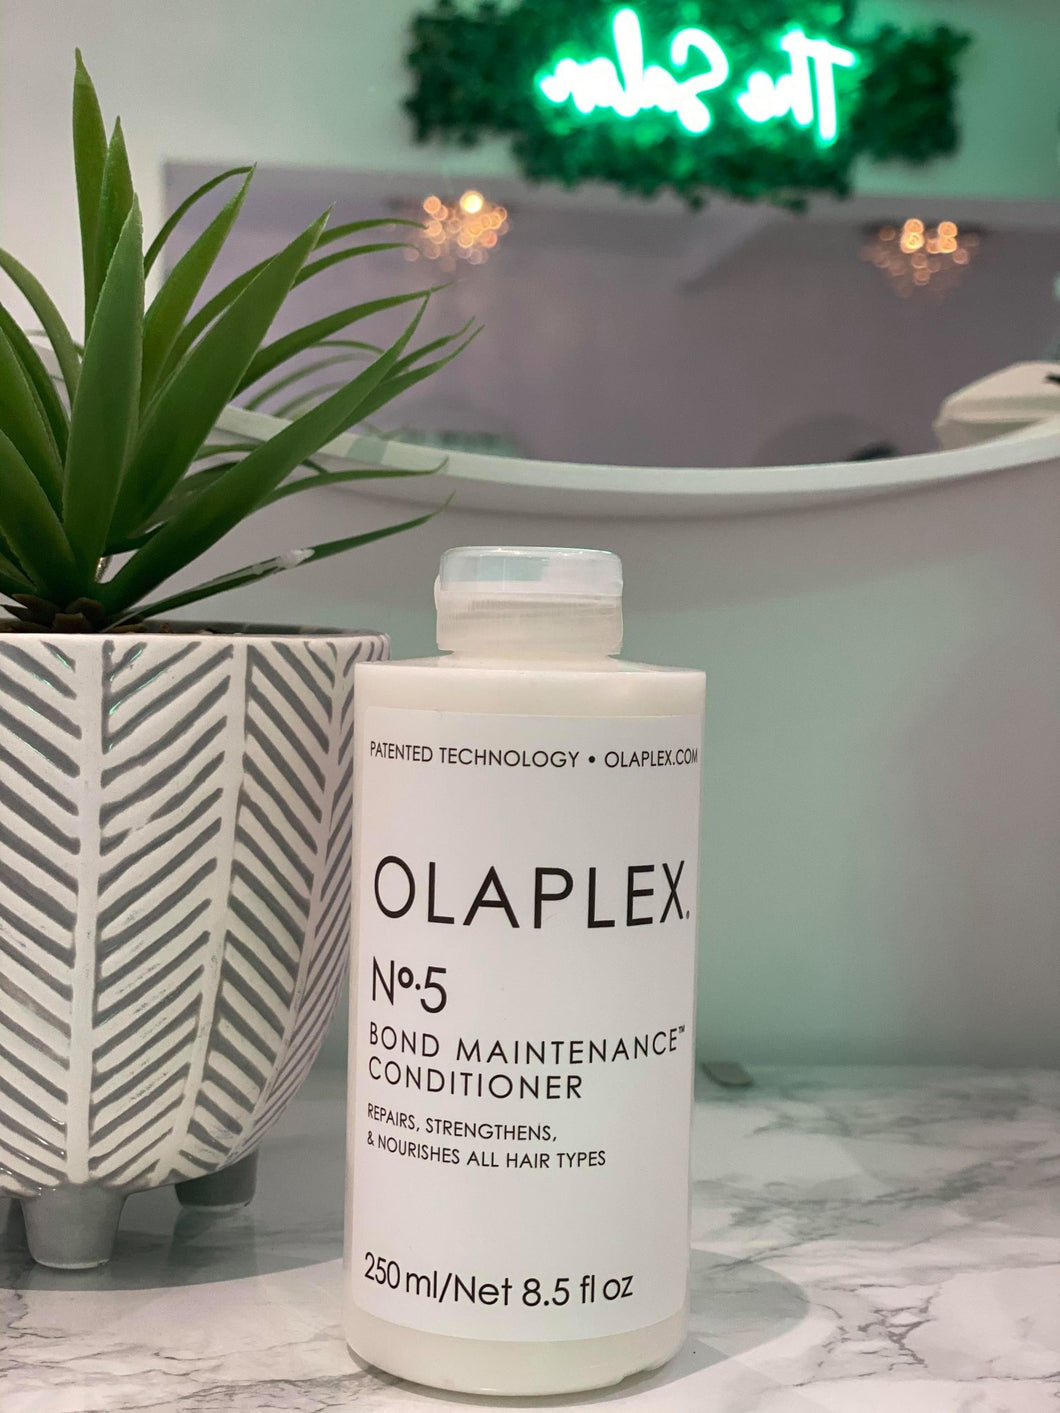 NO.5 OLAPLEX Bond Maintenance Conditioner